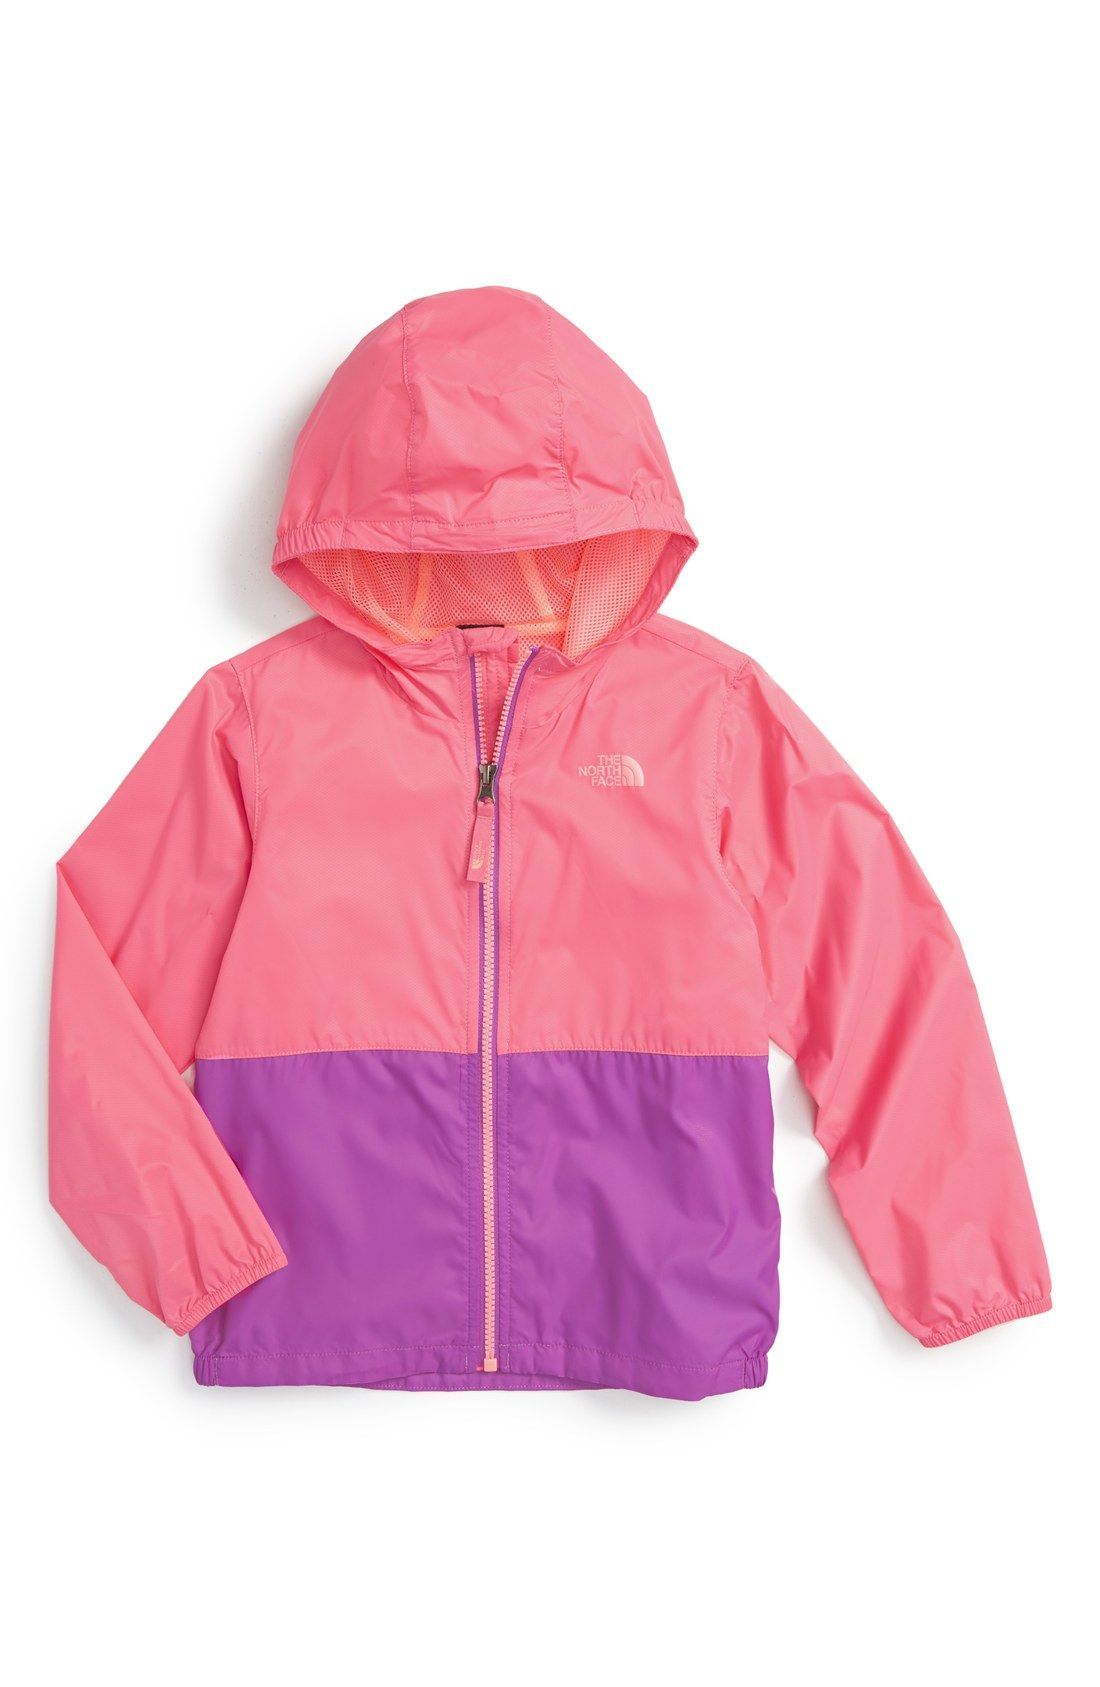 8c0a582e4 The North Face  Flurry  Colorblock Hooded Wind Jacket (Toddler Girls ...